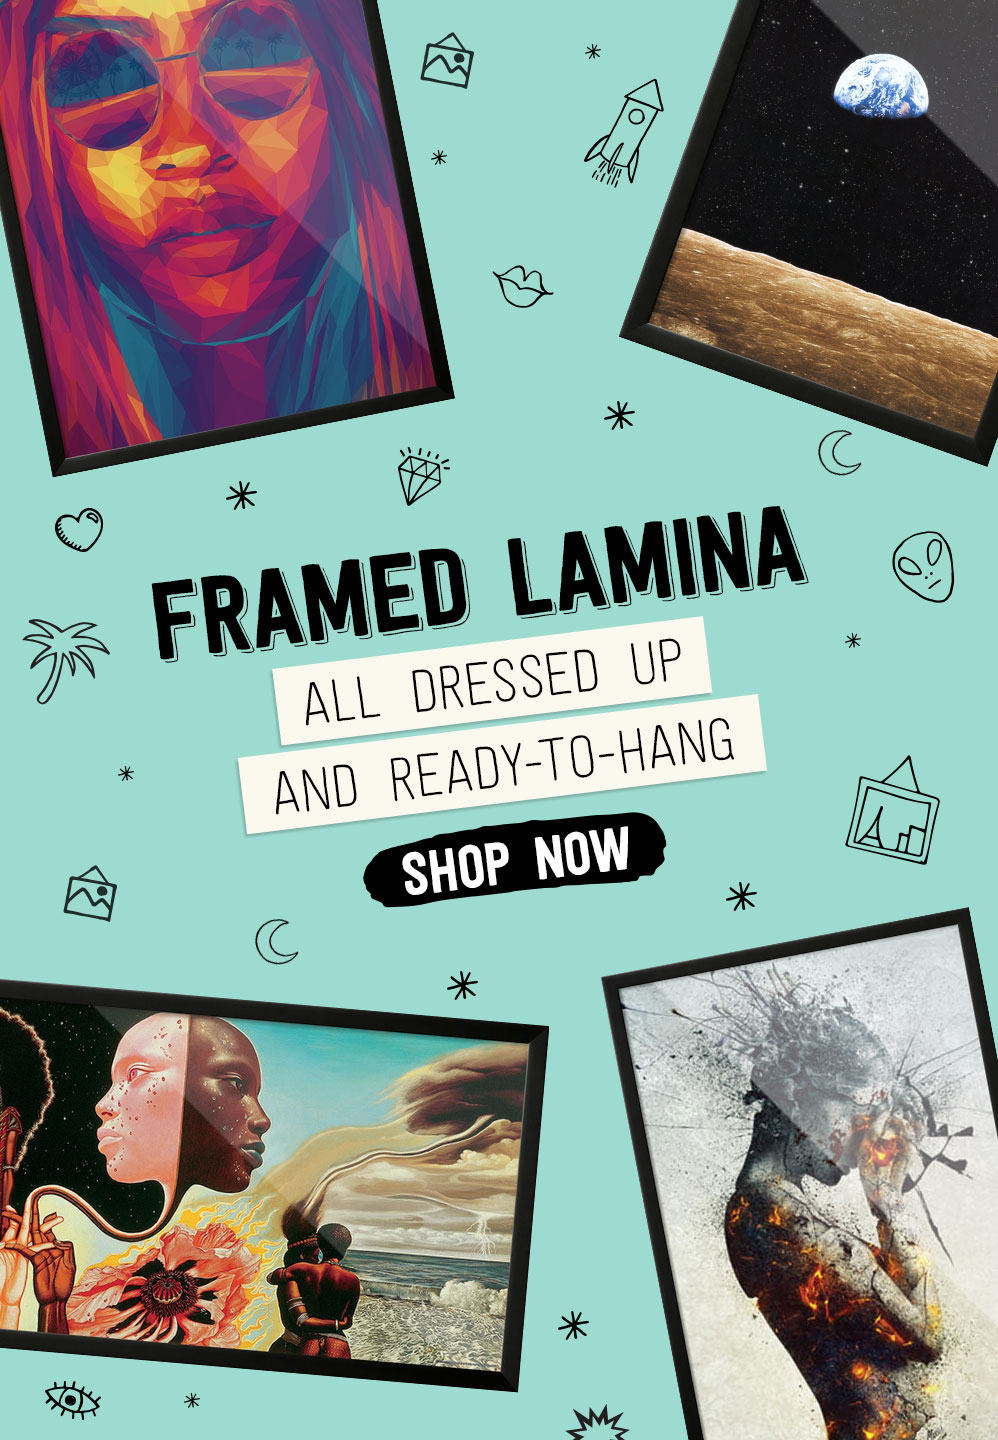 FRAMED LAMINA. ALL DRESSED UP AND READY-TO-HANG. SHOP NOW